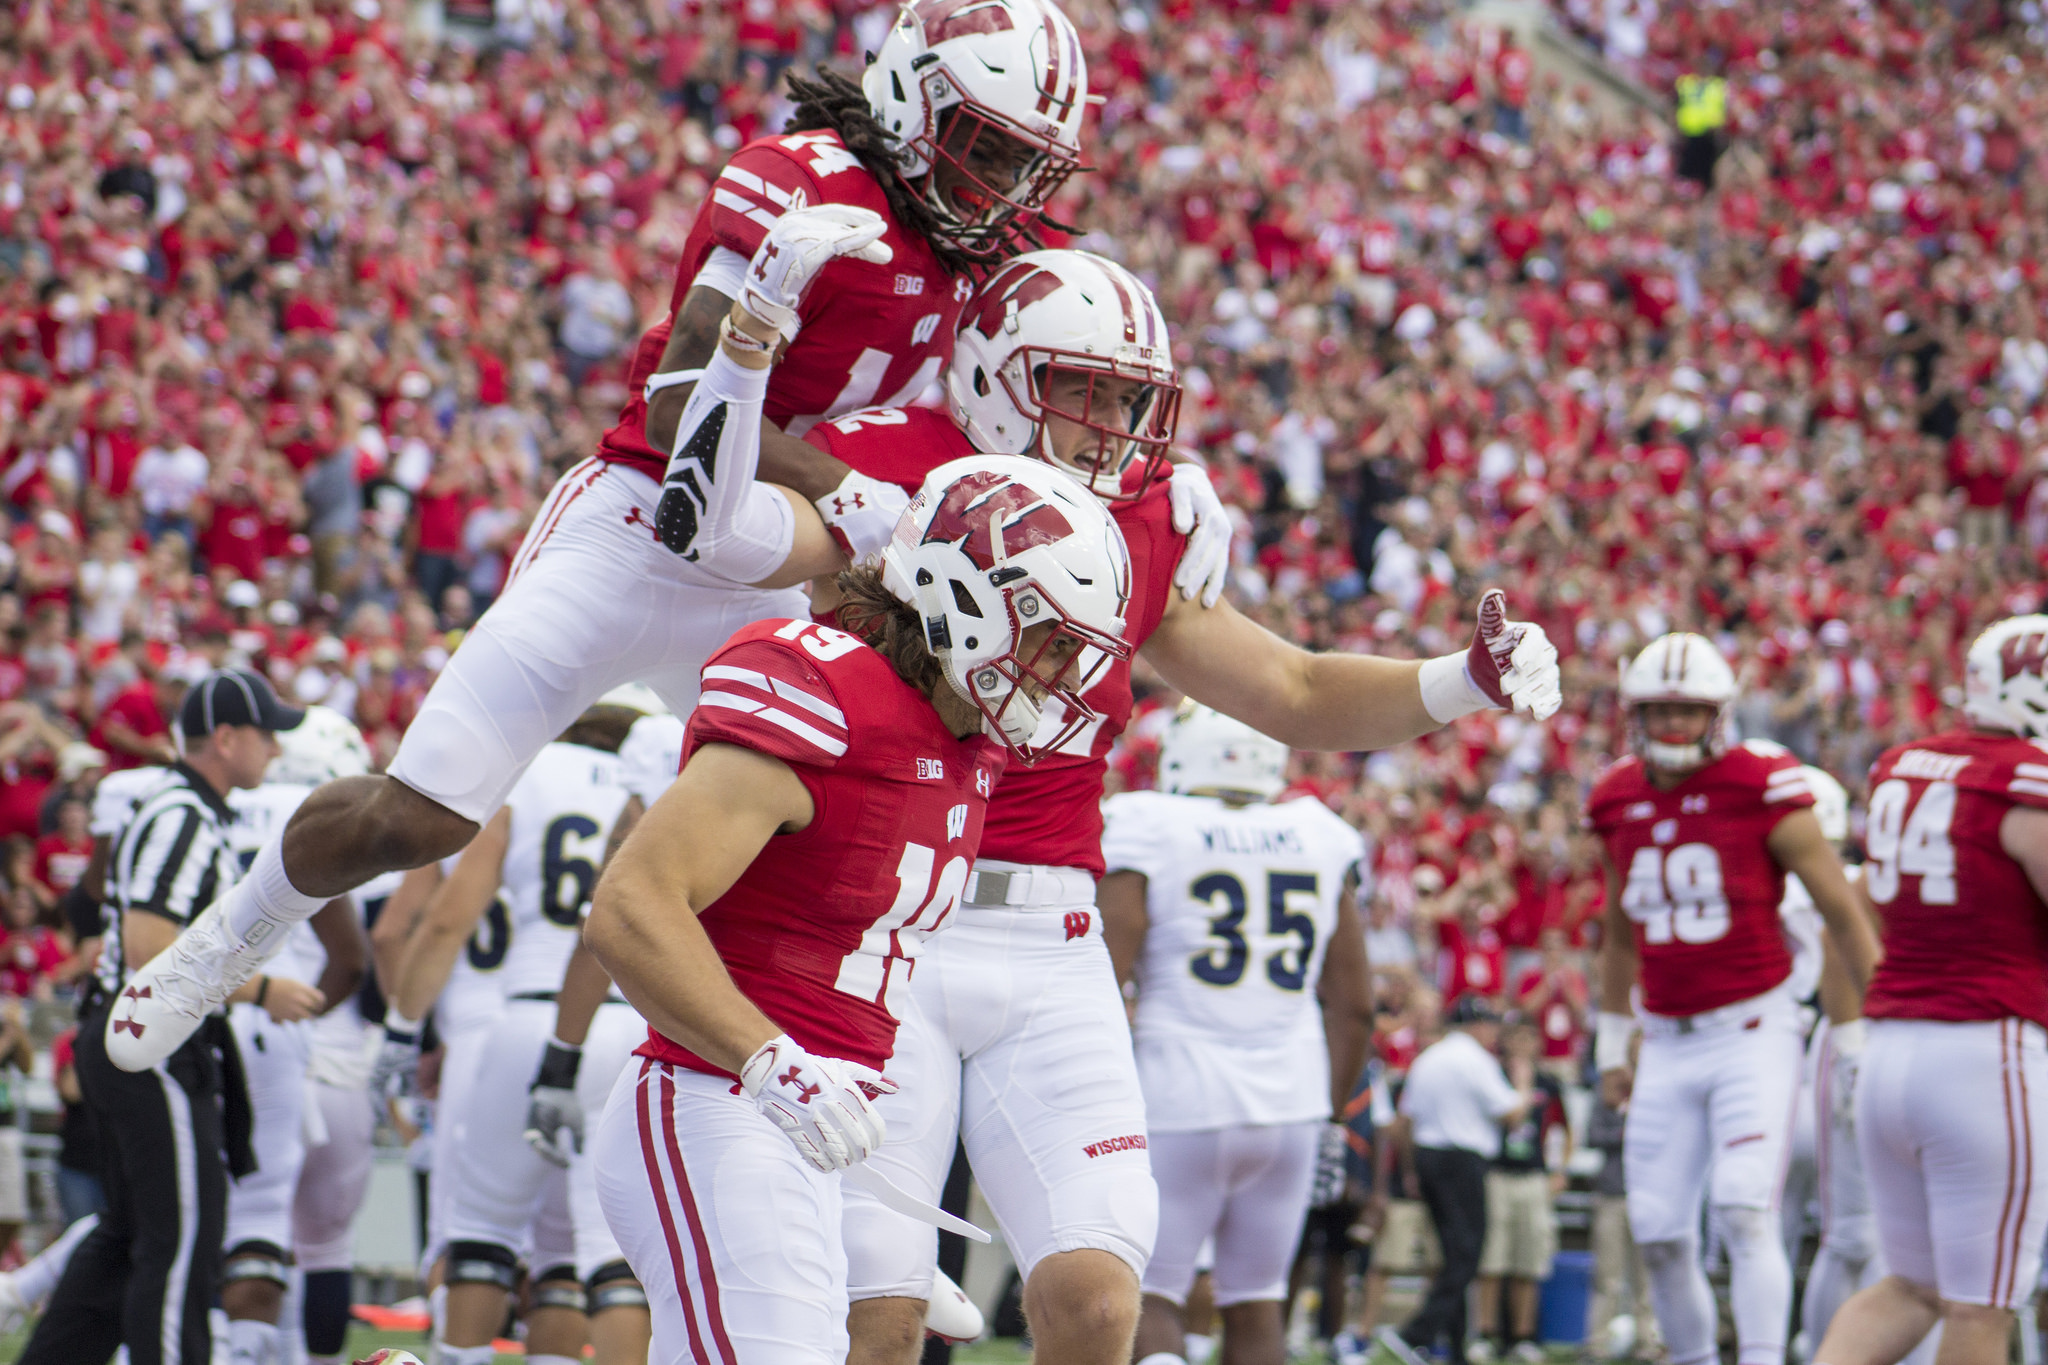 Corey Clement: UW RB Clement exits win with left leg injury